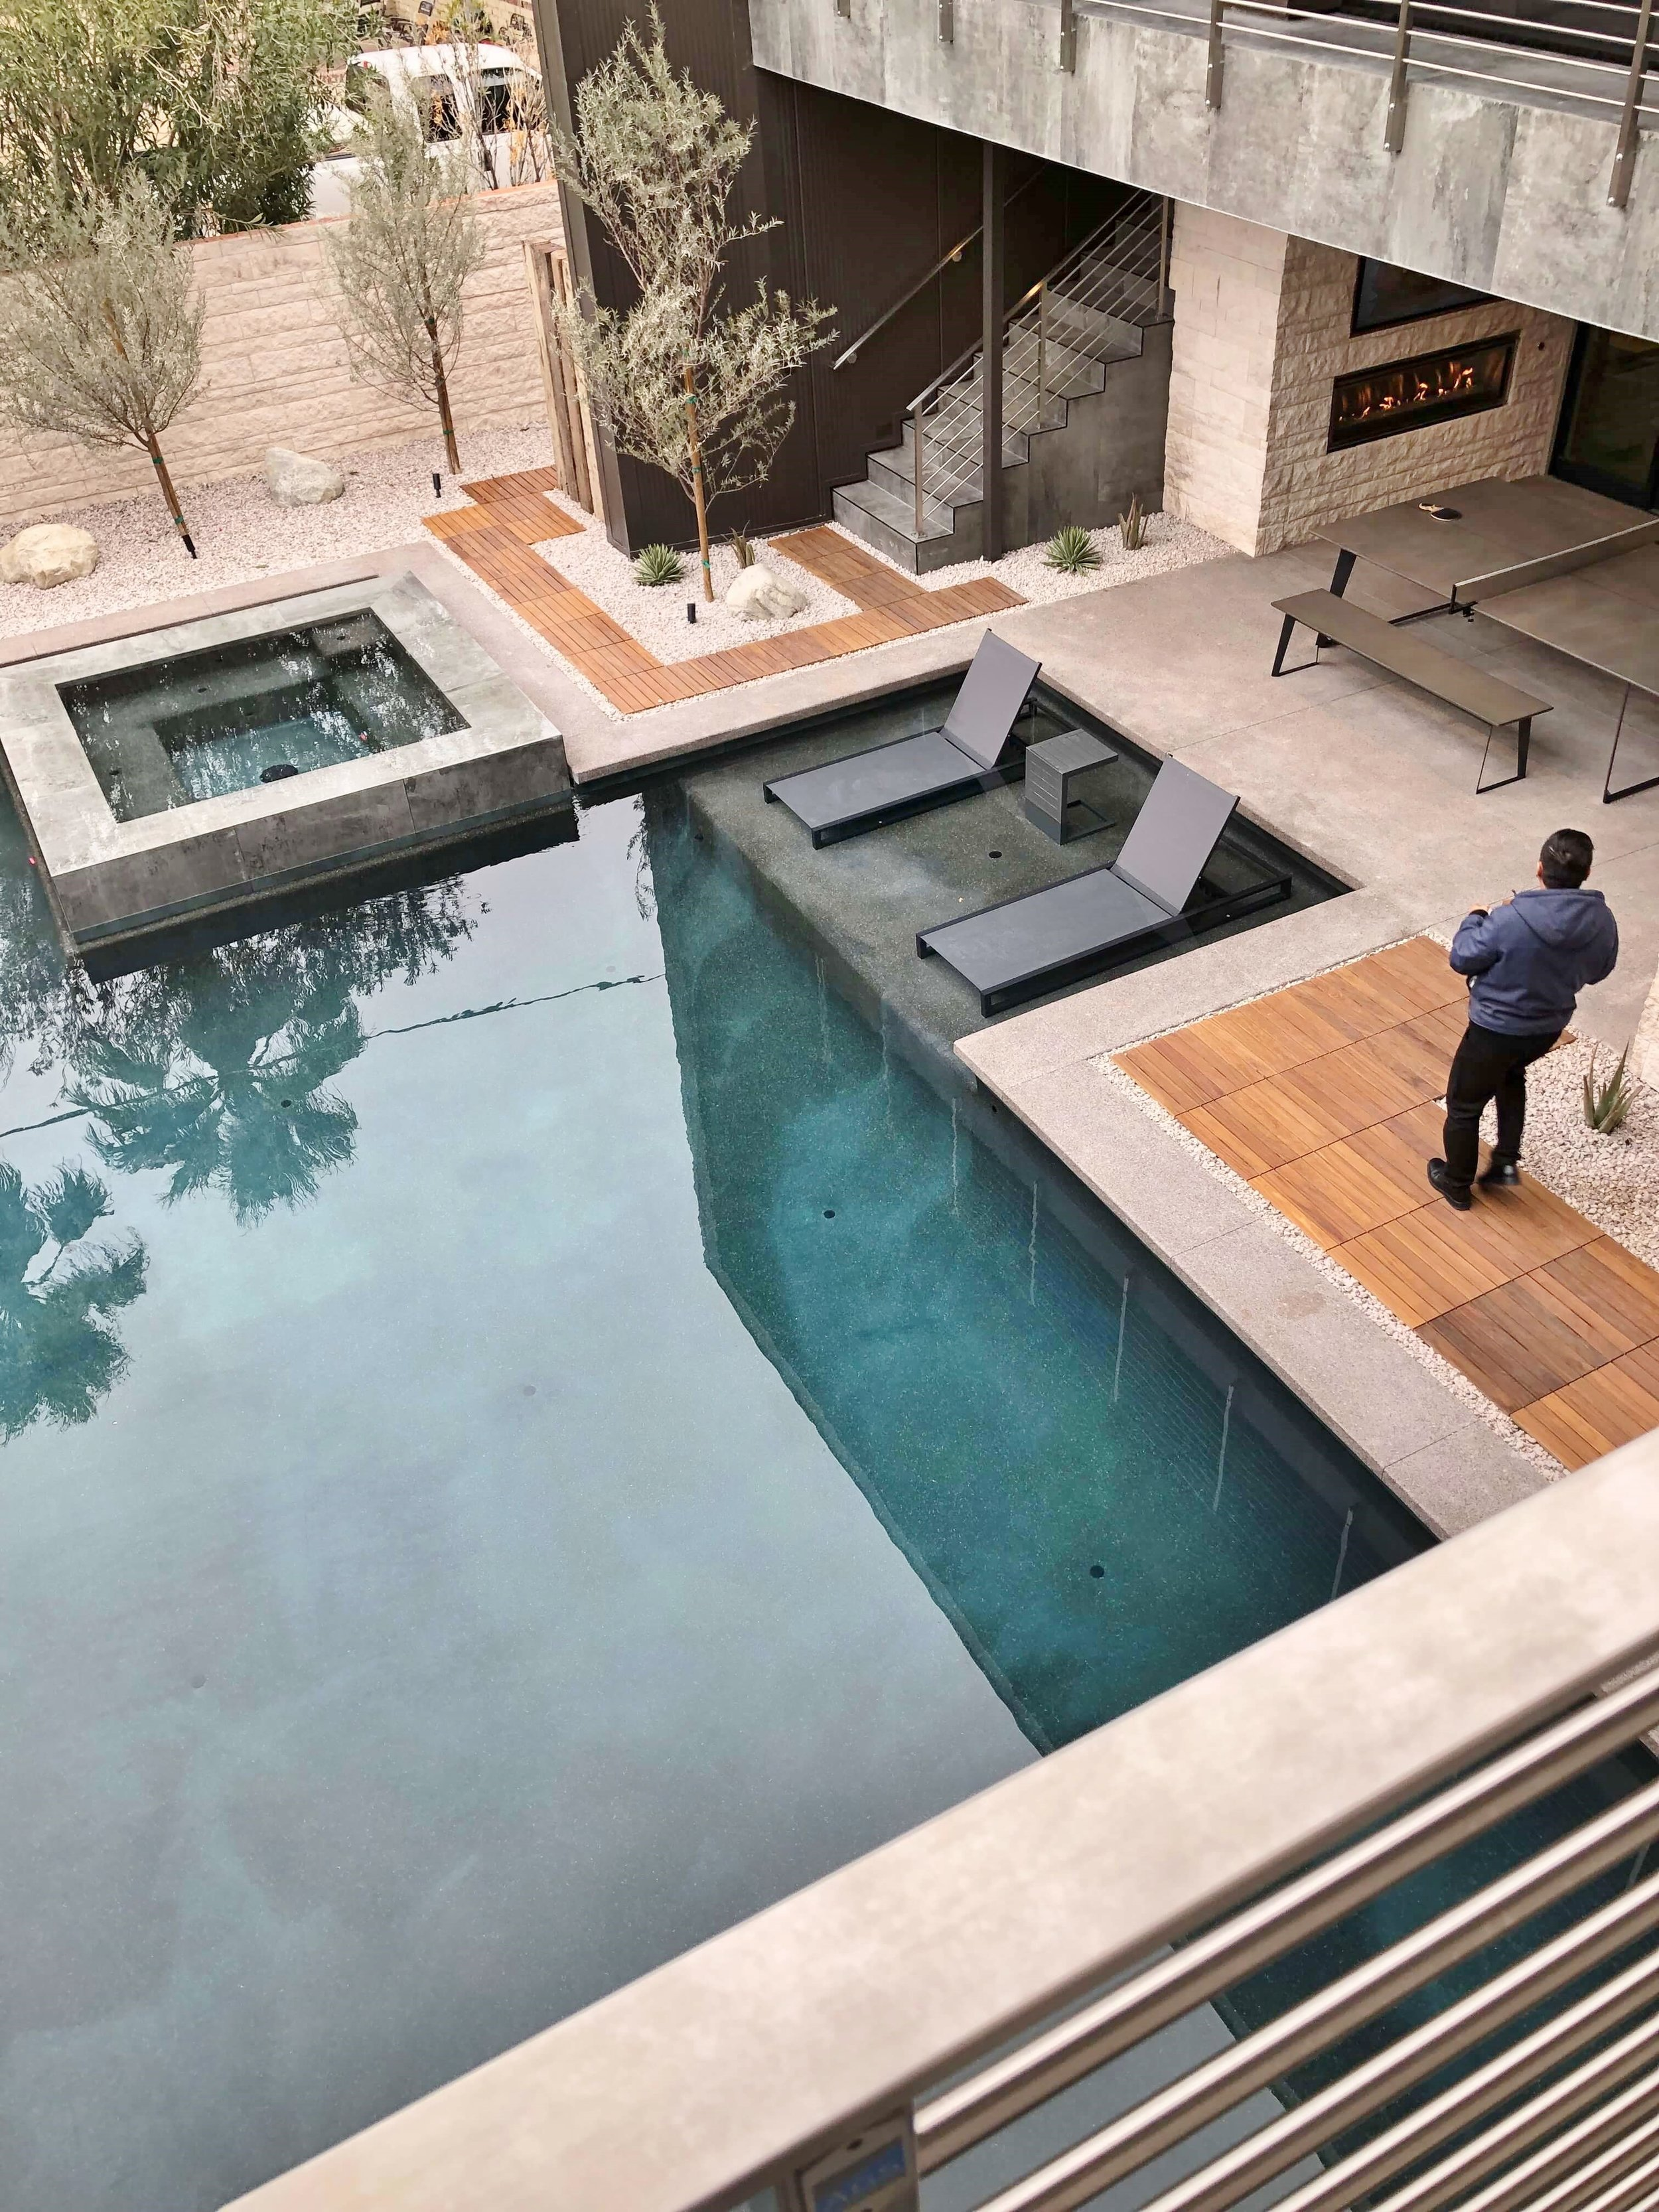 This luxury pool oasis sits in a courtyard of The New American Remodel 2019. #masterbathroom #hometour #contemporaryhome